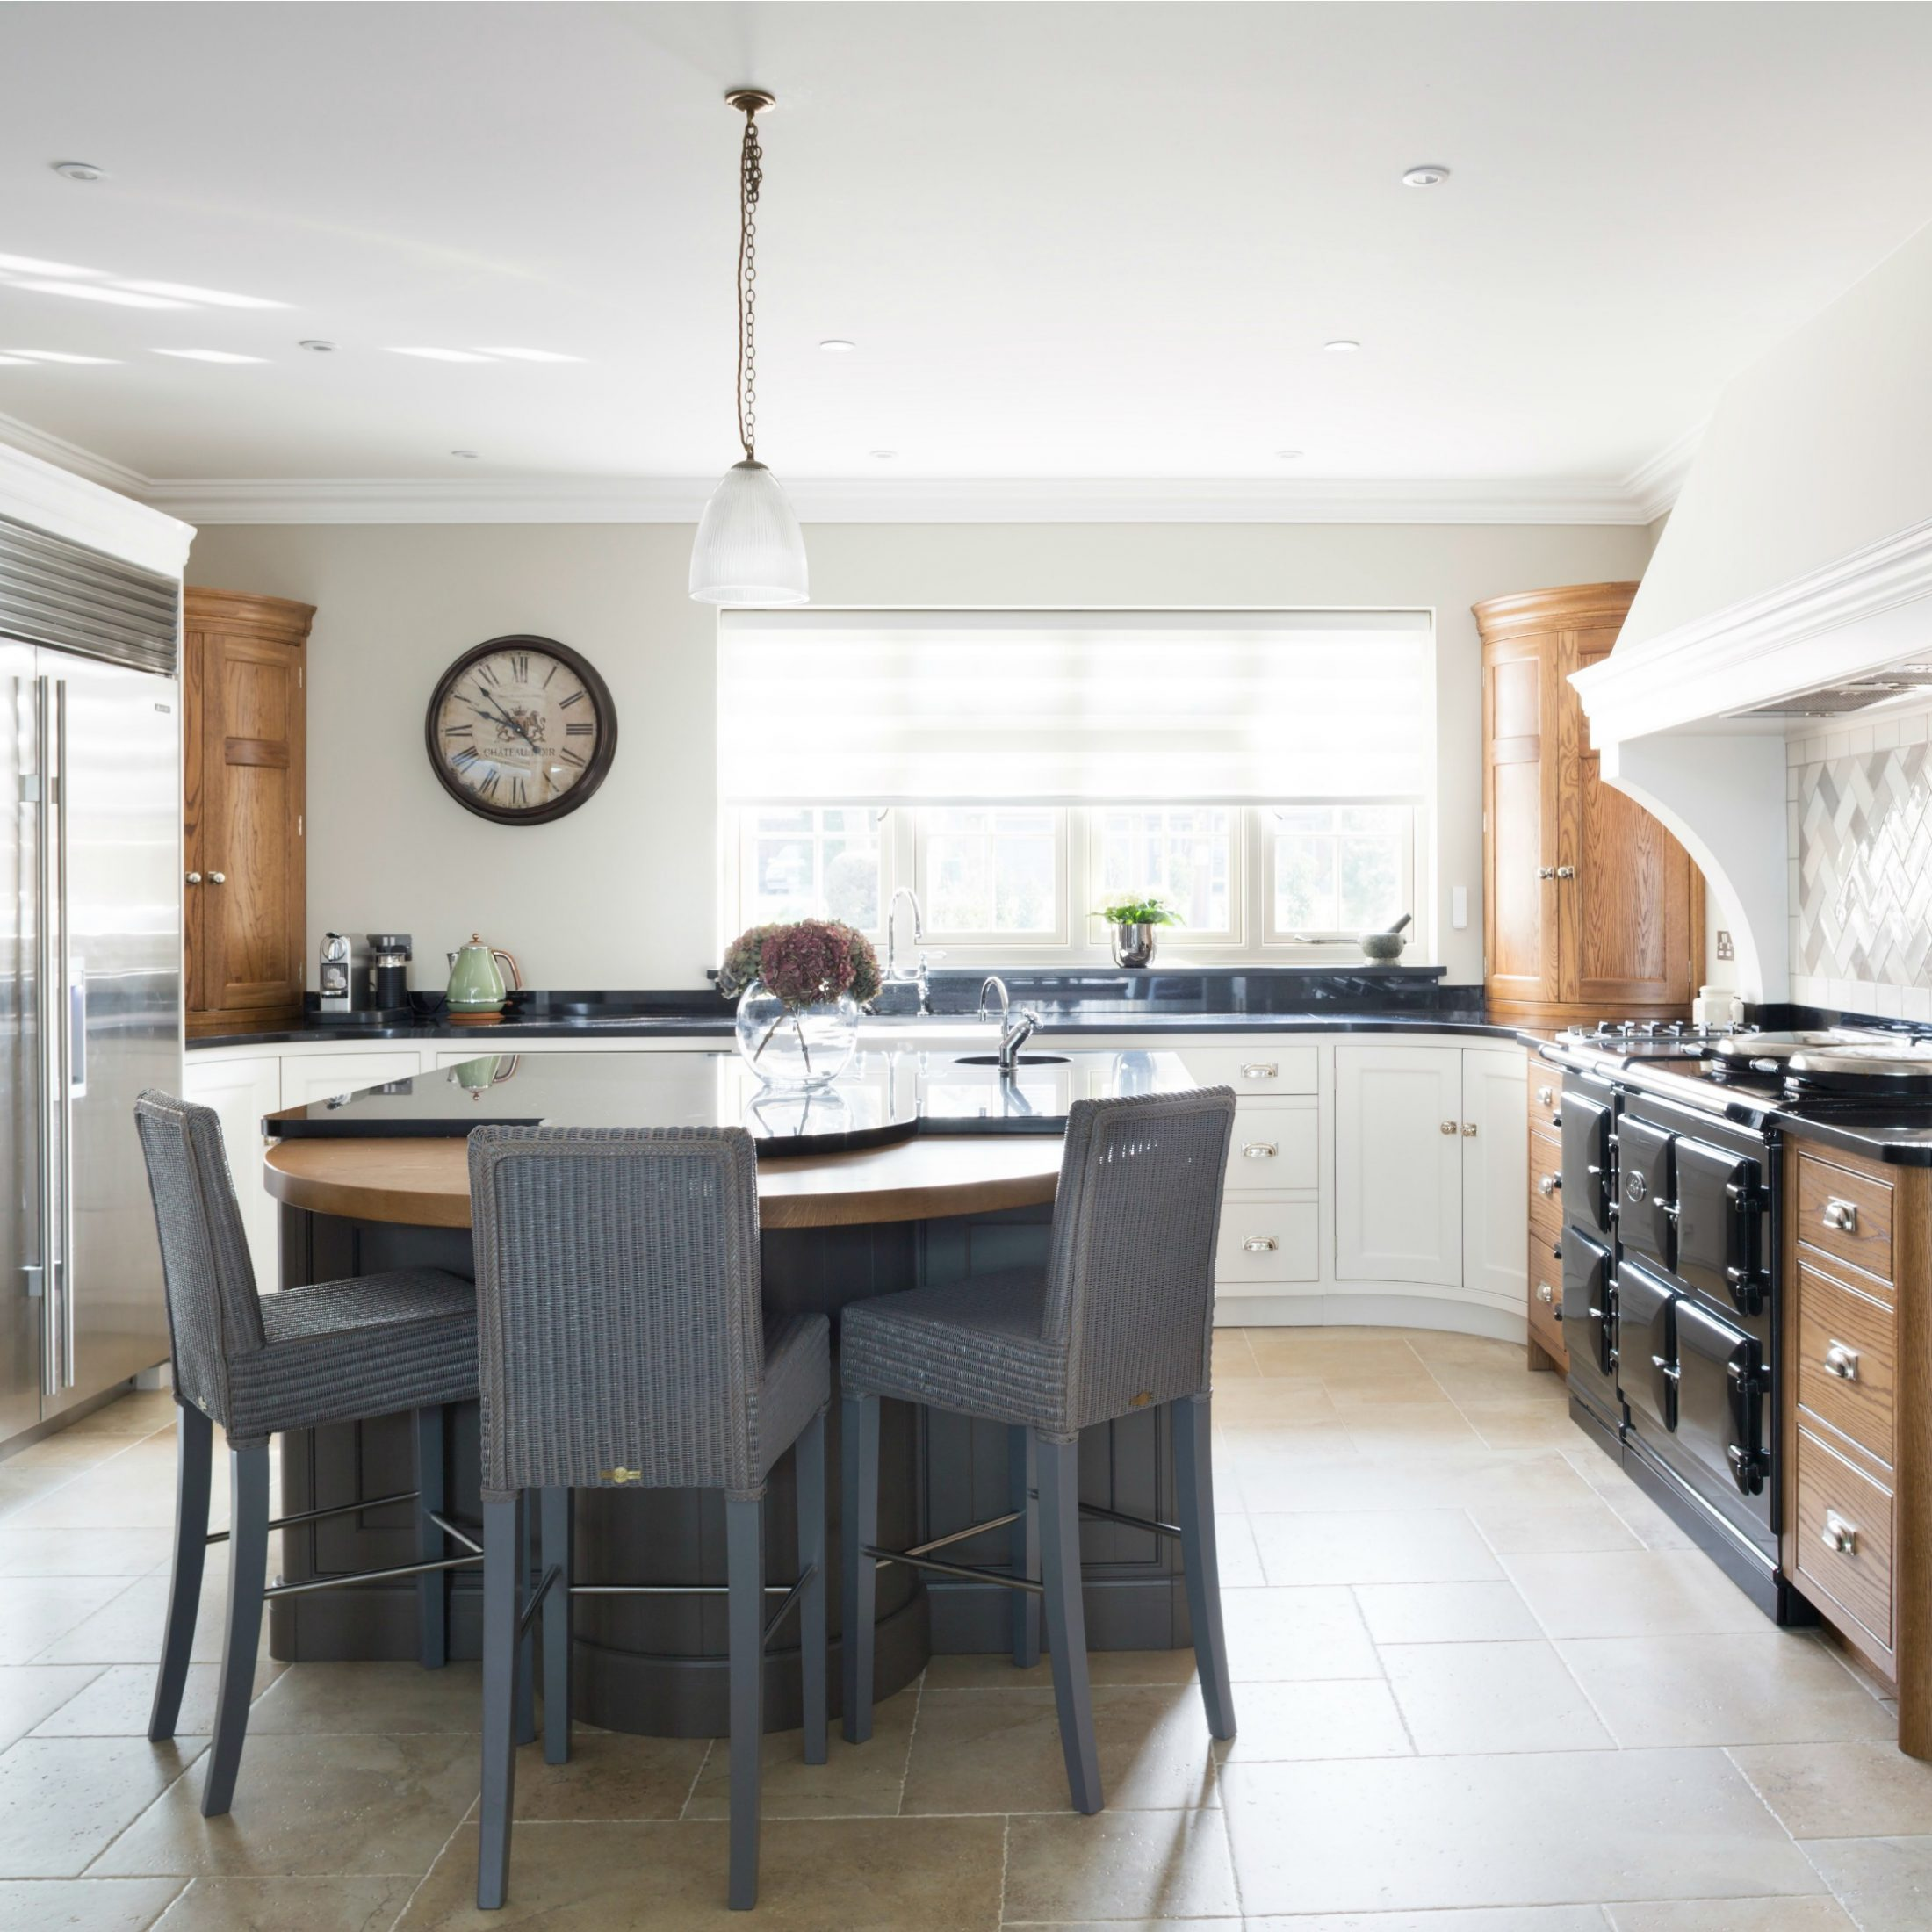 Luxury Country Kitchen, Maldon - Humphrey Munson